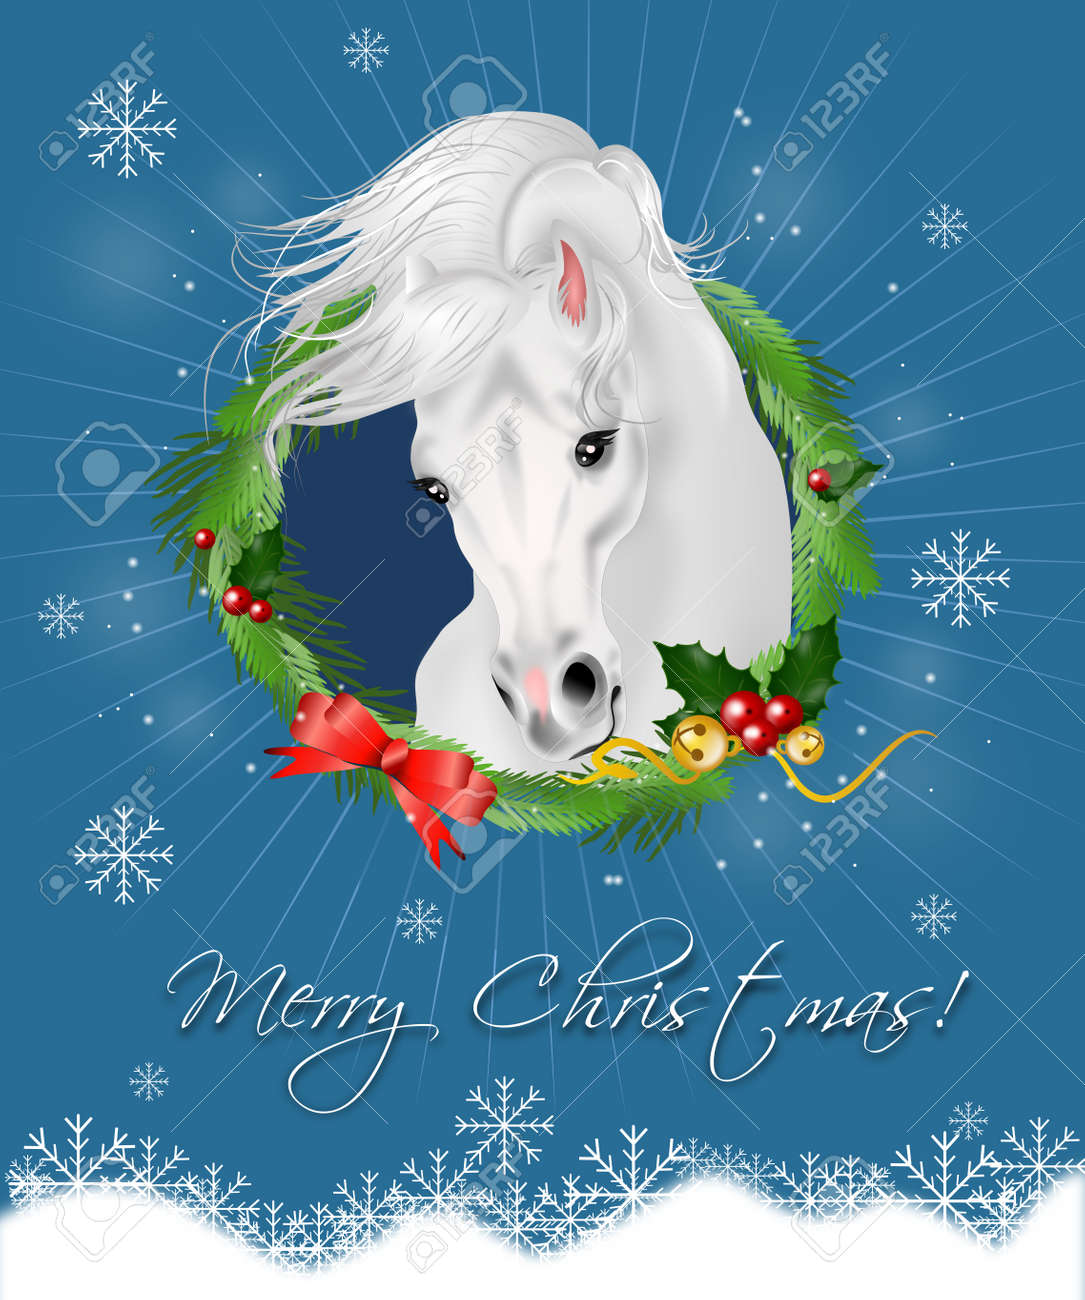 Beautiful Christmas Card With White Horse Illustration Stock Photo Picture And Royalty Free Image Image 46027588